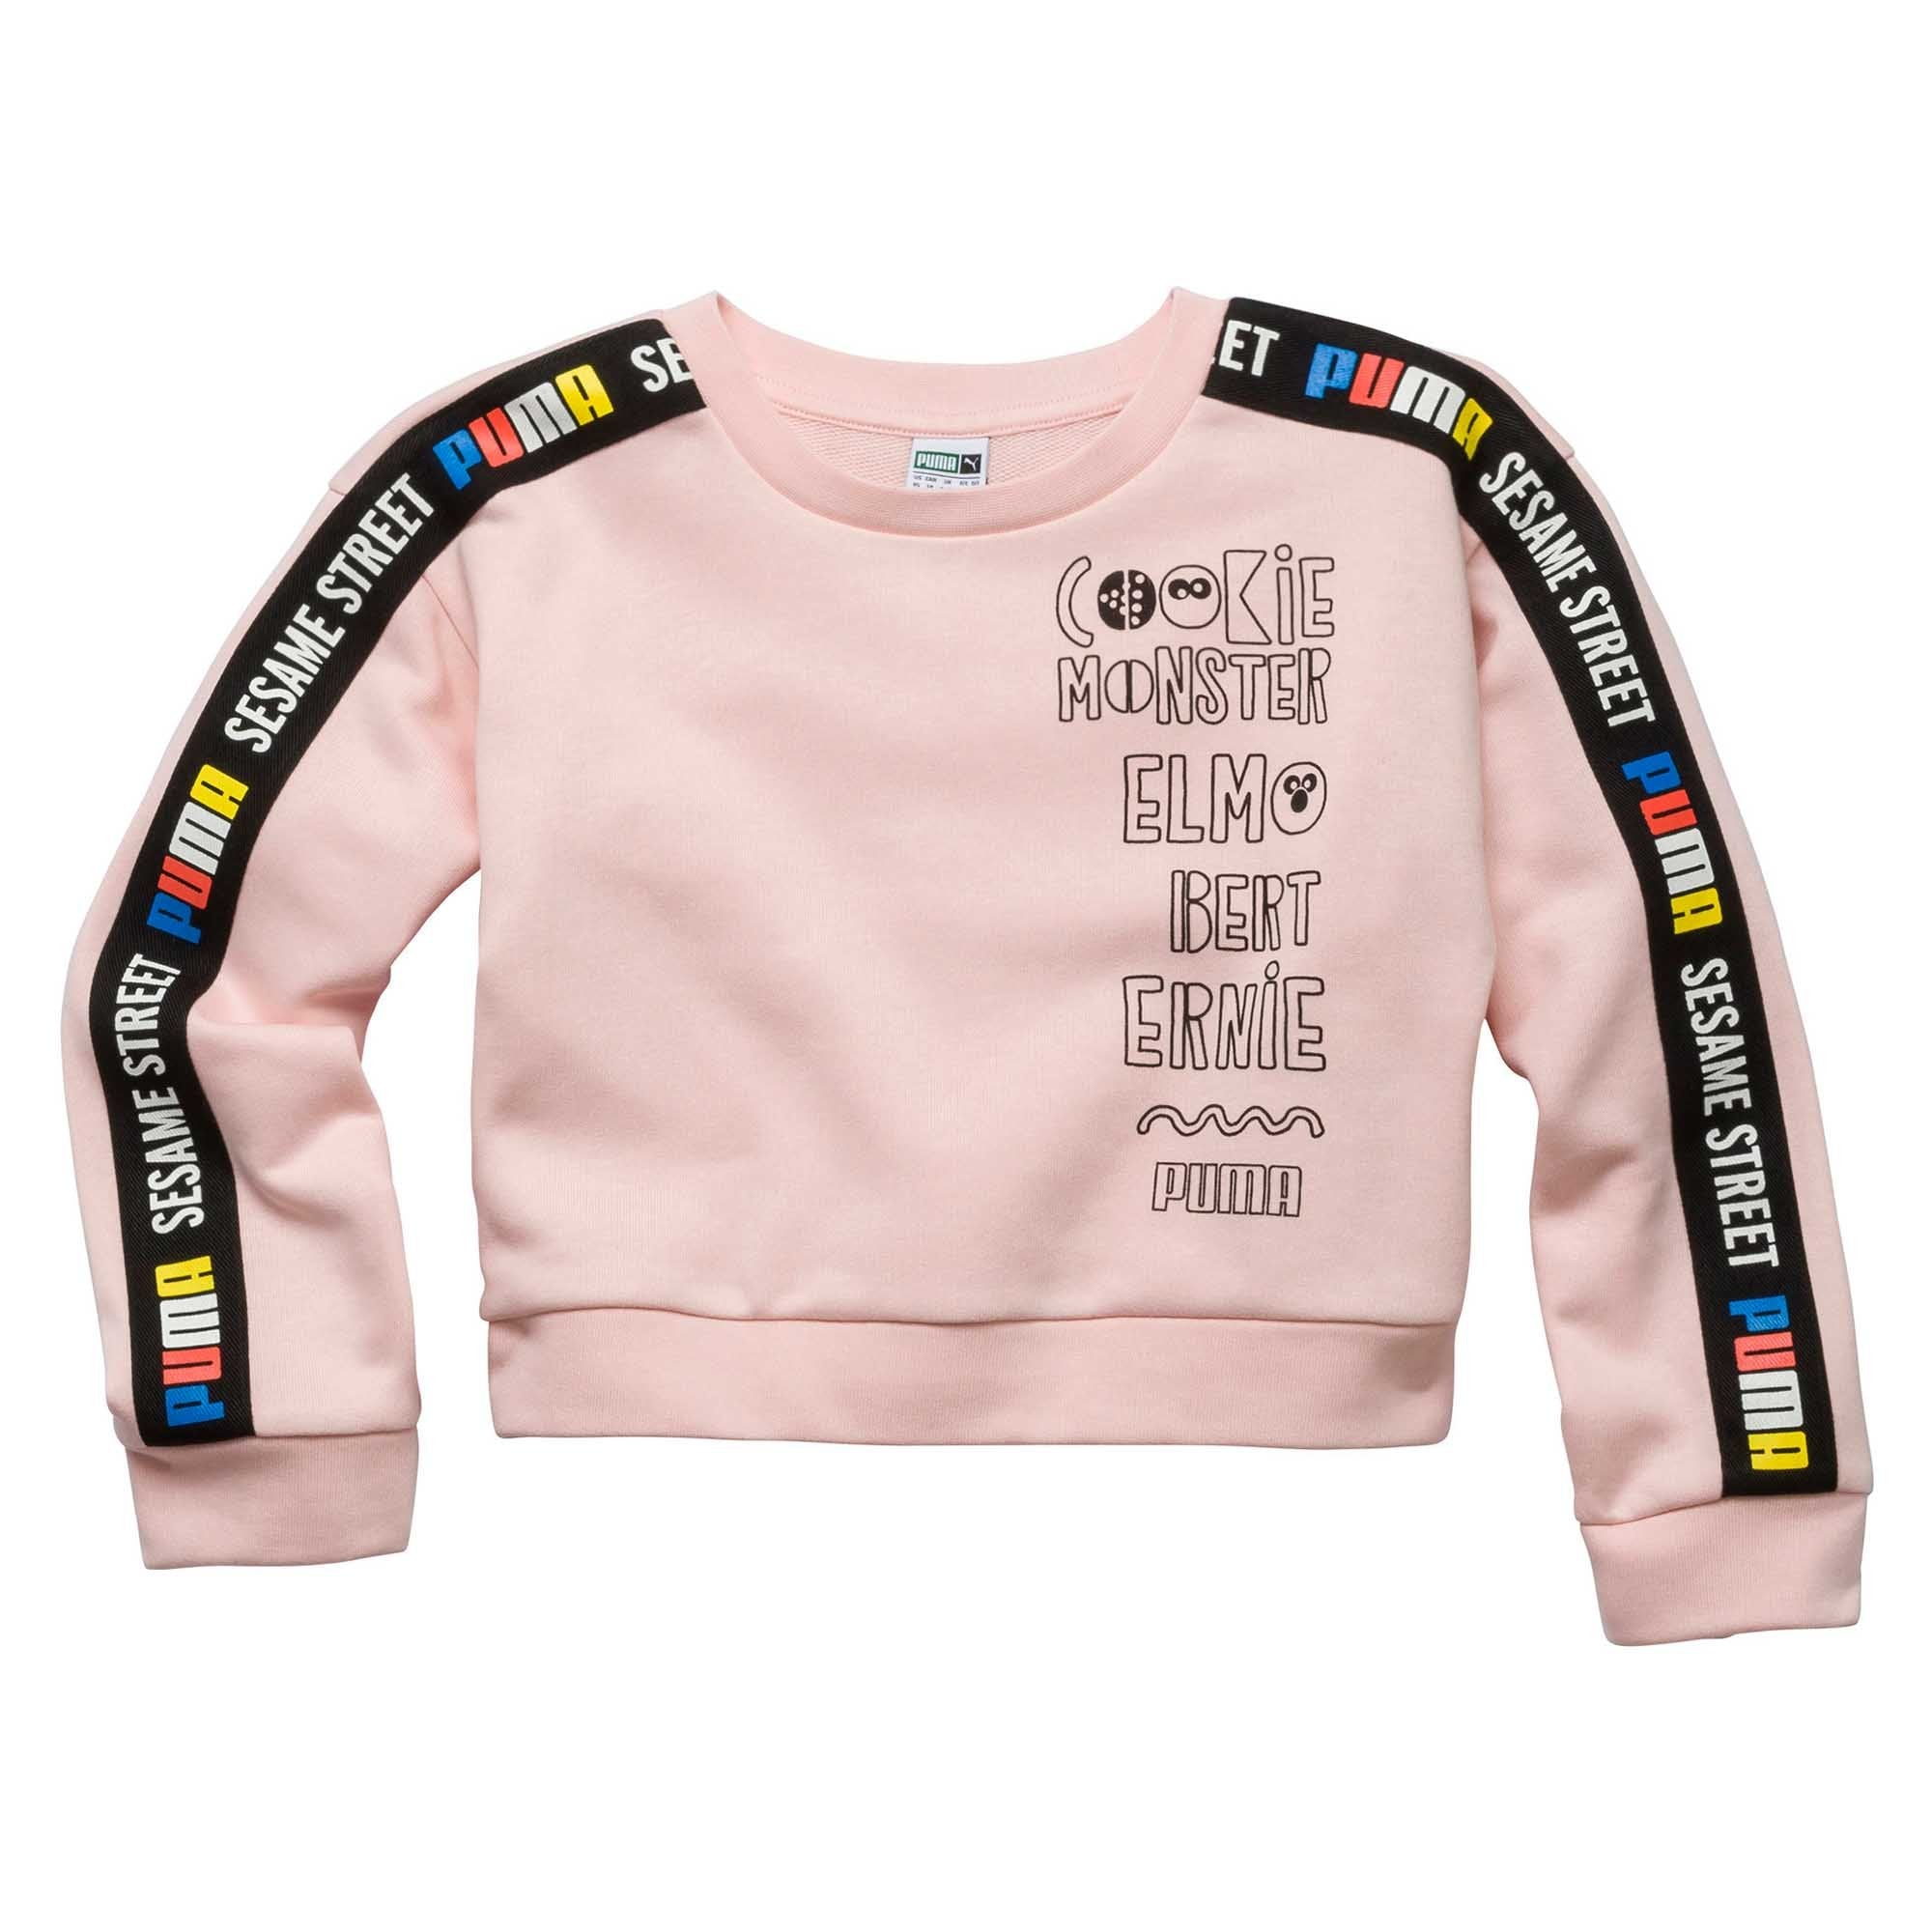 5c2478f0ed6326 Buy Puma Girls Sesame Street Crewneck Sweatshirt Online in Singapore |  Royal Sporting House